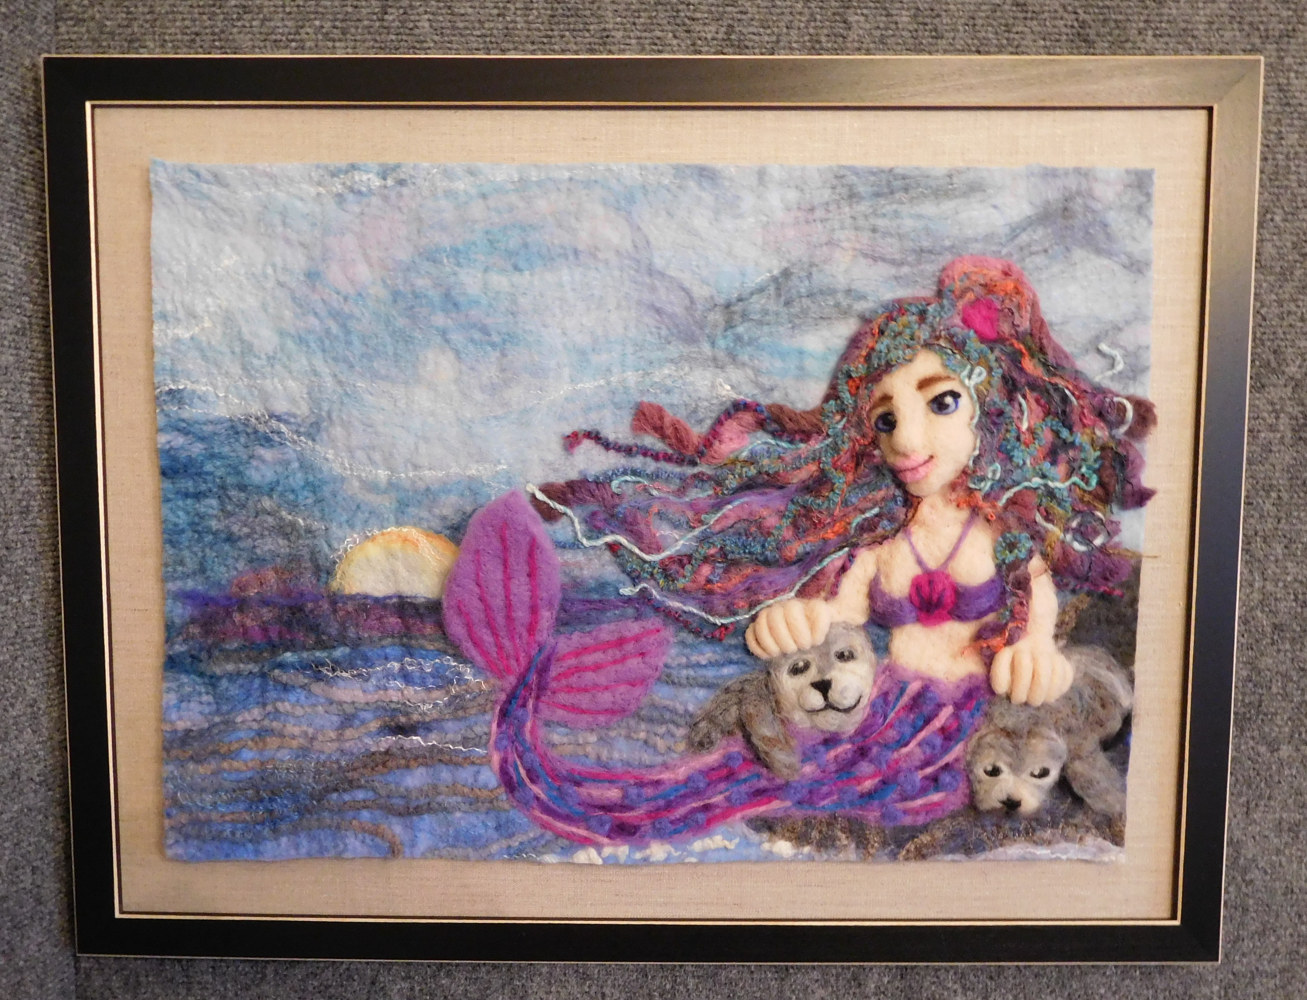 Mermaid with seals by Valerie Johnson